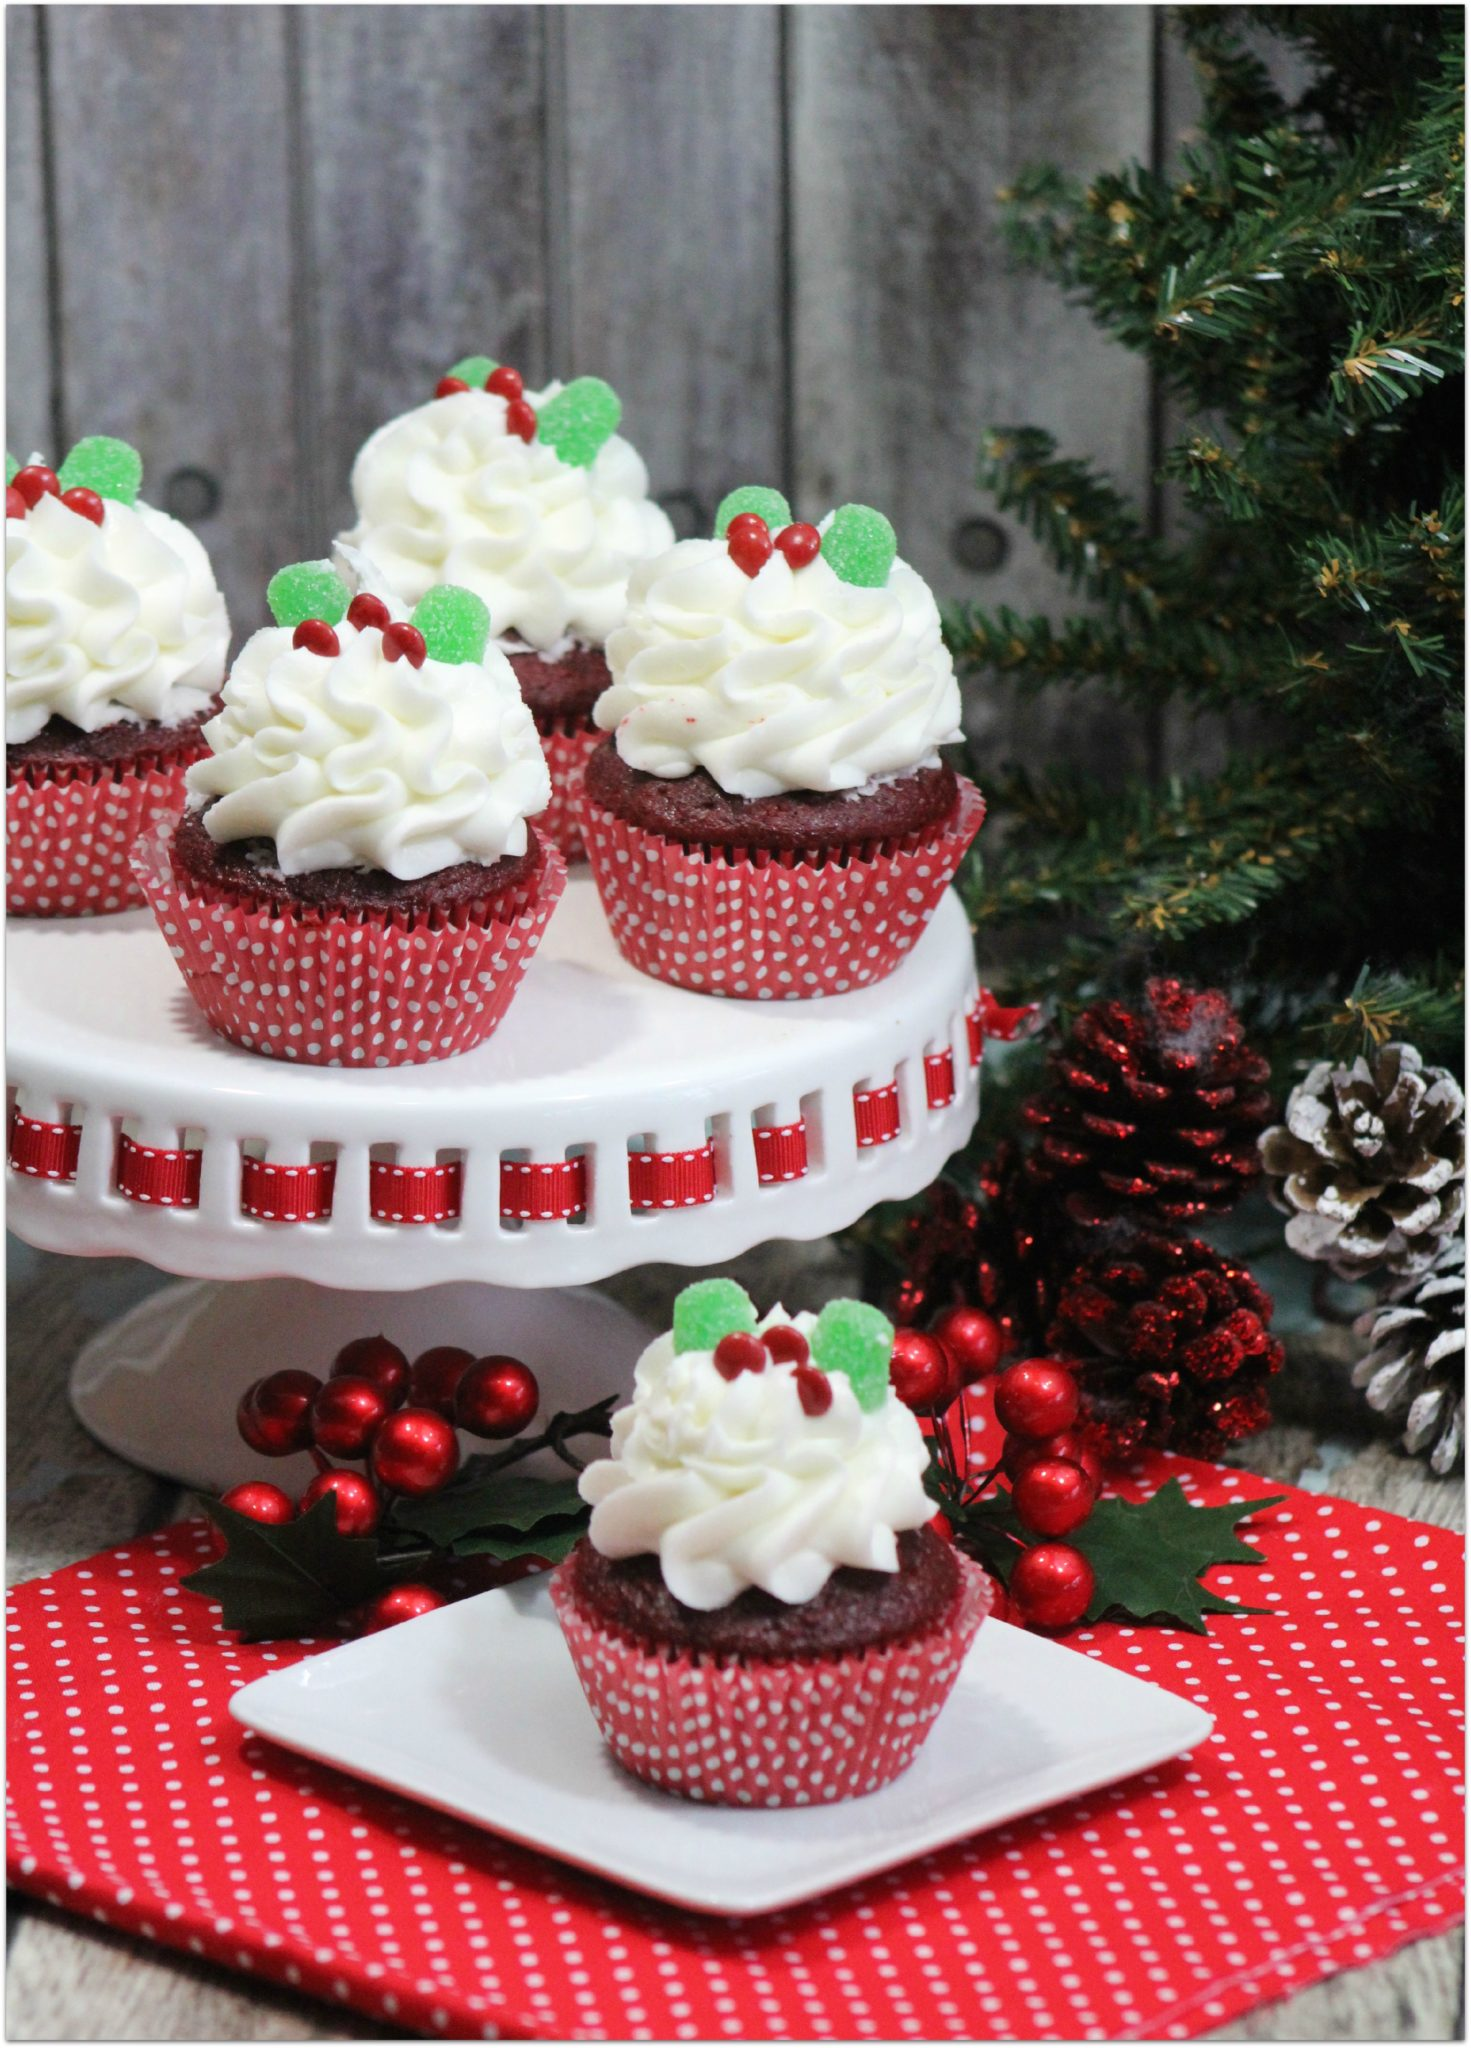 Red Velvet Cupcakes With Peppermint Frosting - and 8 other delicious holiday recipes!